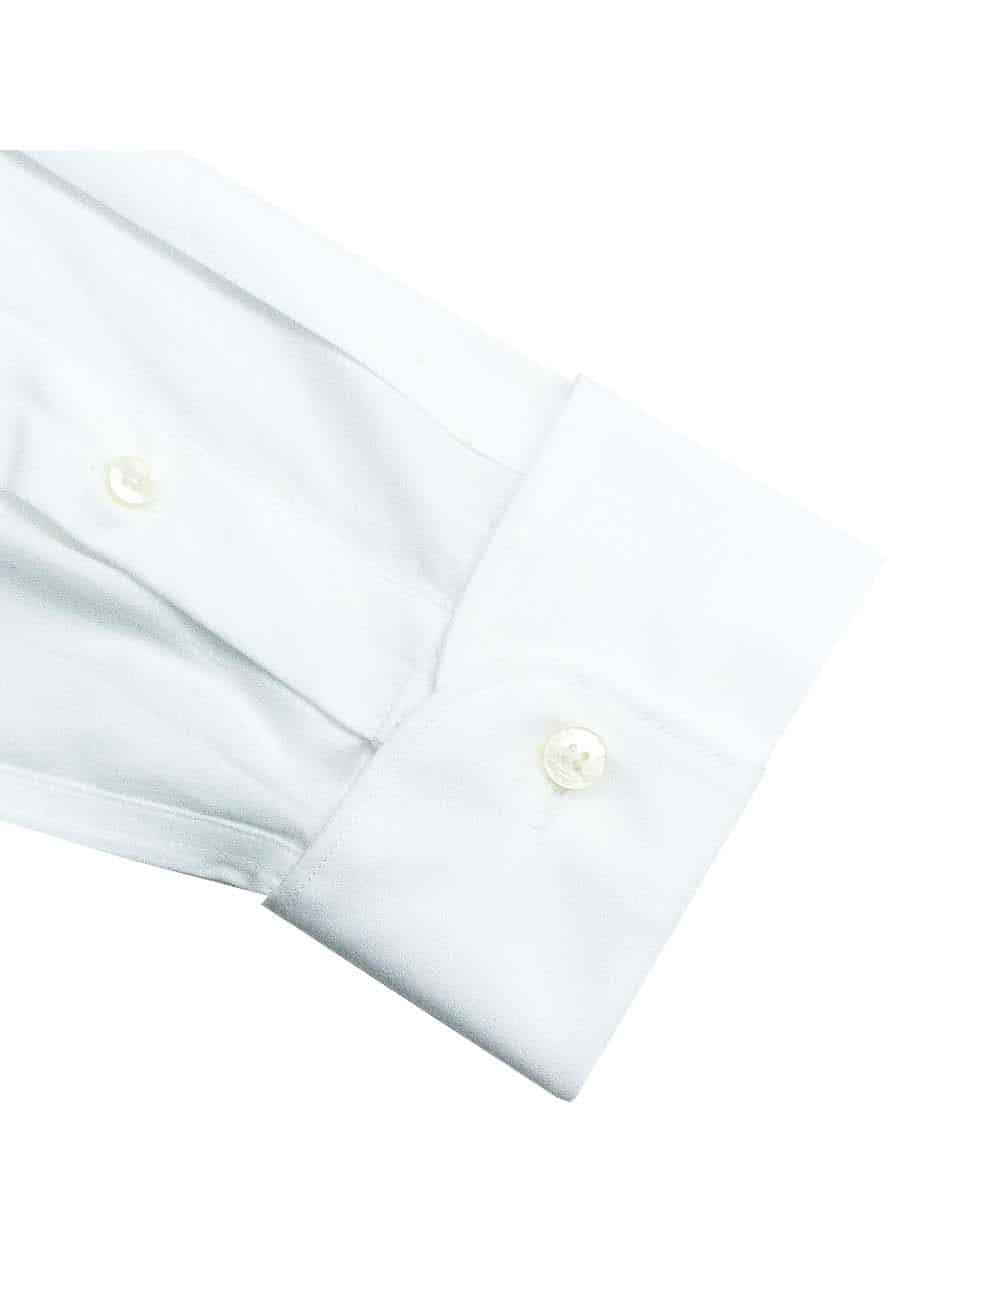 Slim Fit 100% Premium Cotton Classic Collar Long Sleeve Double Cuff Solid White Tuxedo Shirt with Pleated Front Bib and Button Studs, Long Lasting White Finishing SF2RT1.NOS